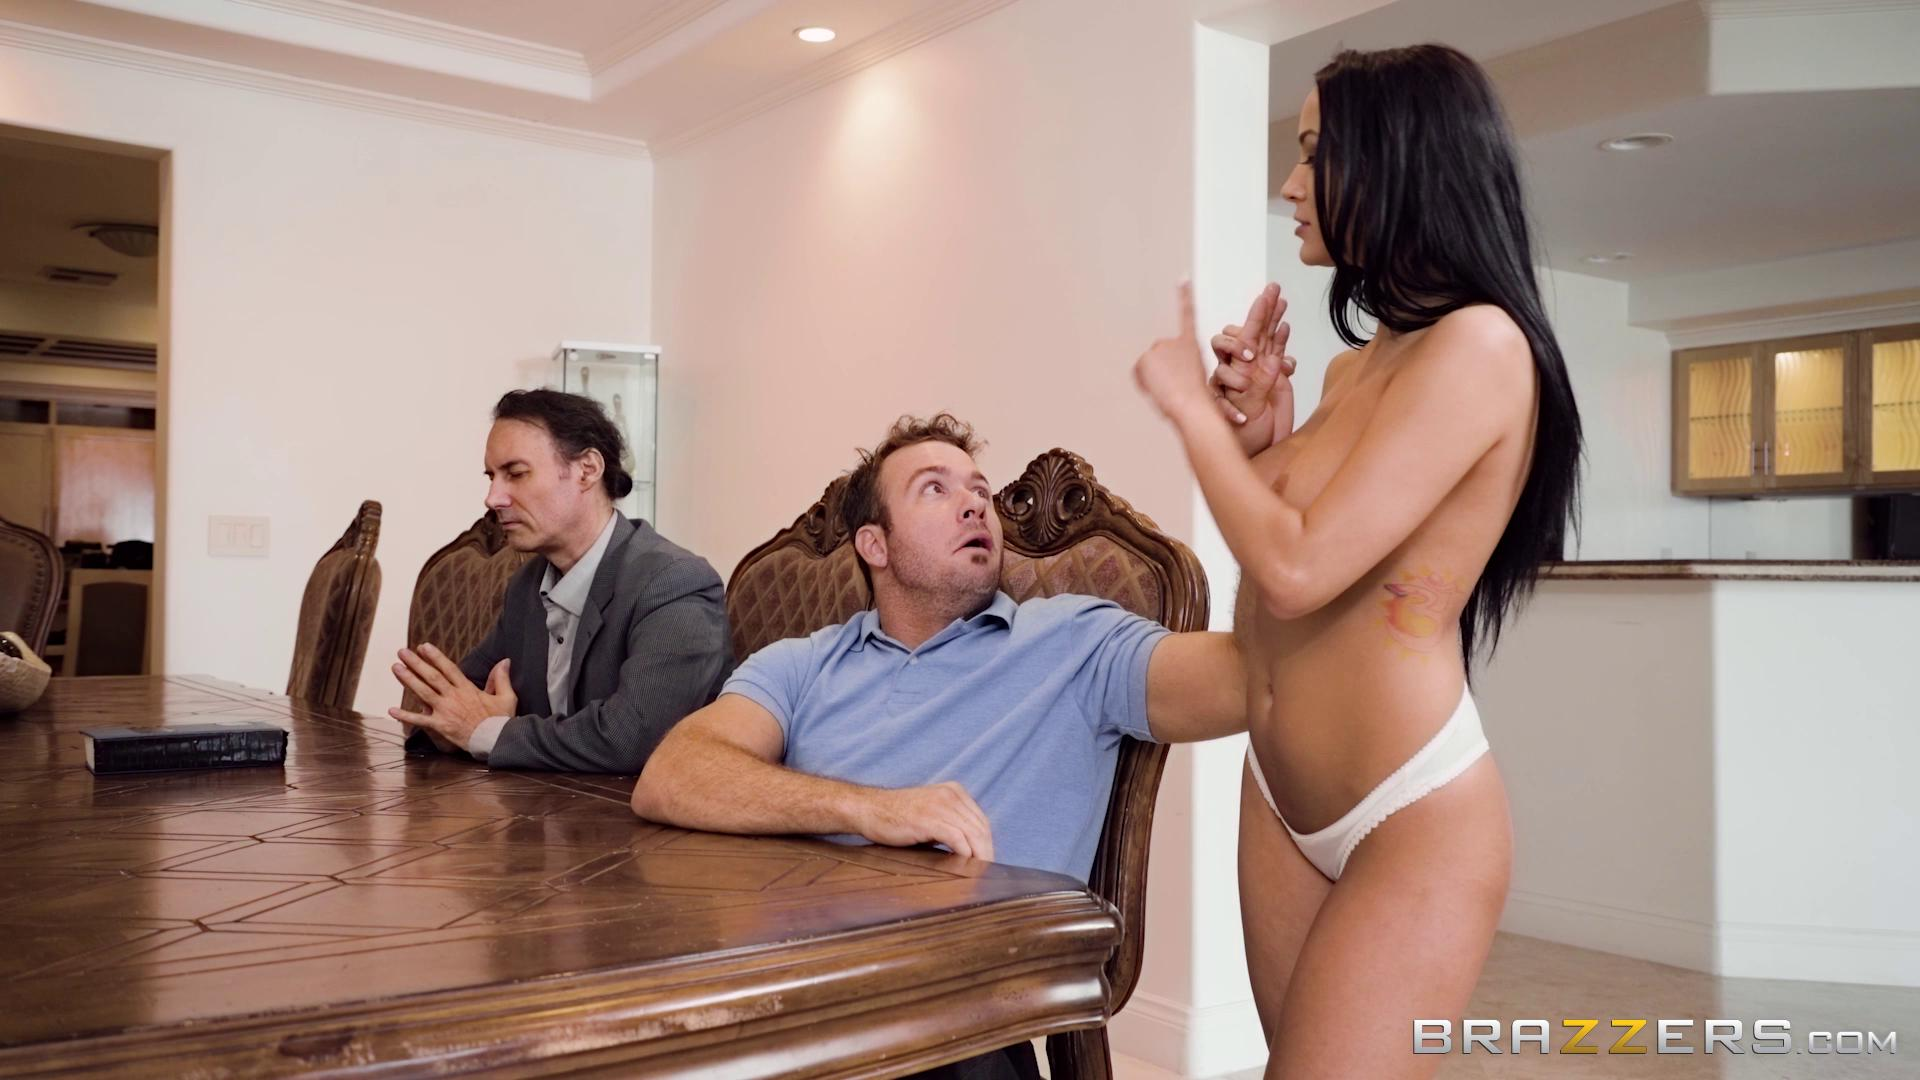 RealWifeStories – Sofi Ryan Preachers Wife Goes Wild